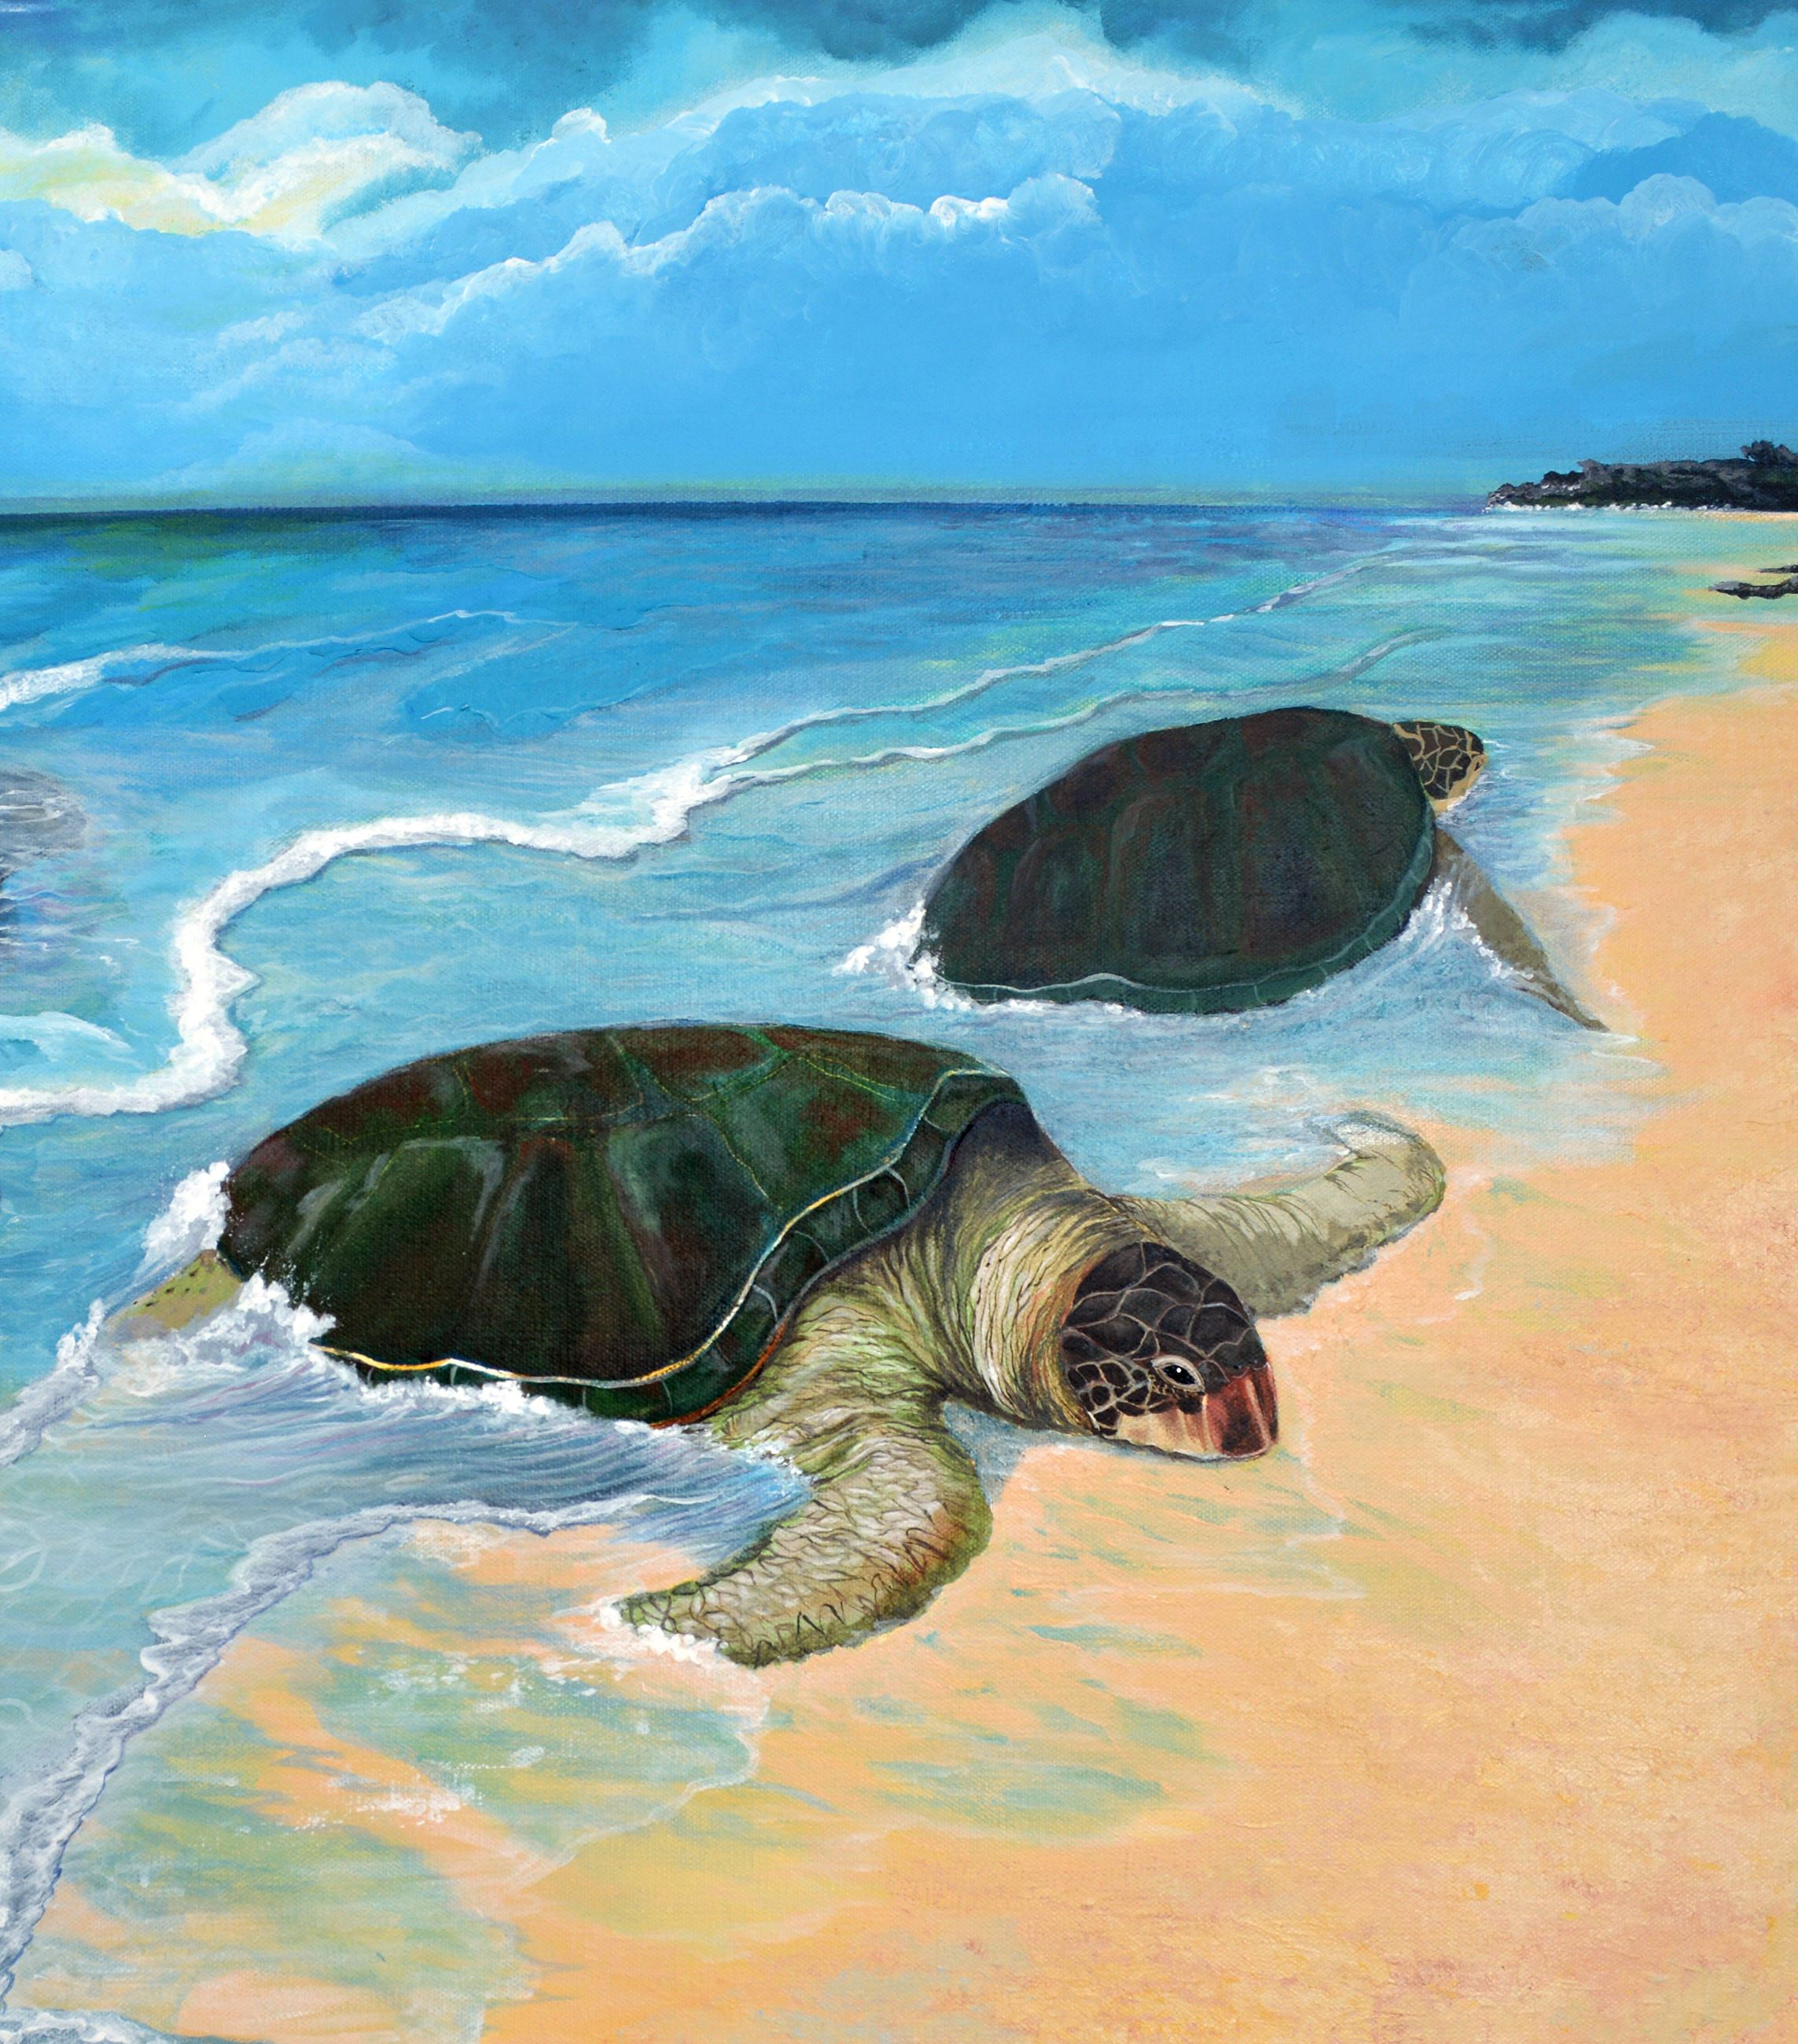 Two turtle nesting